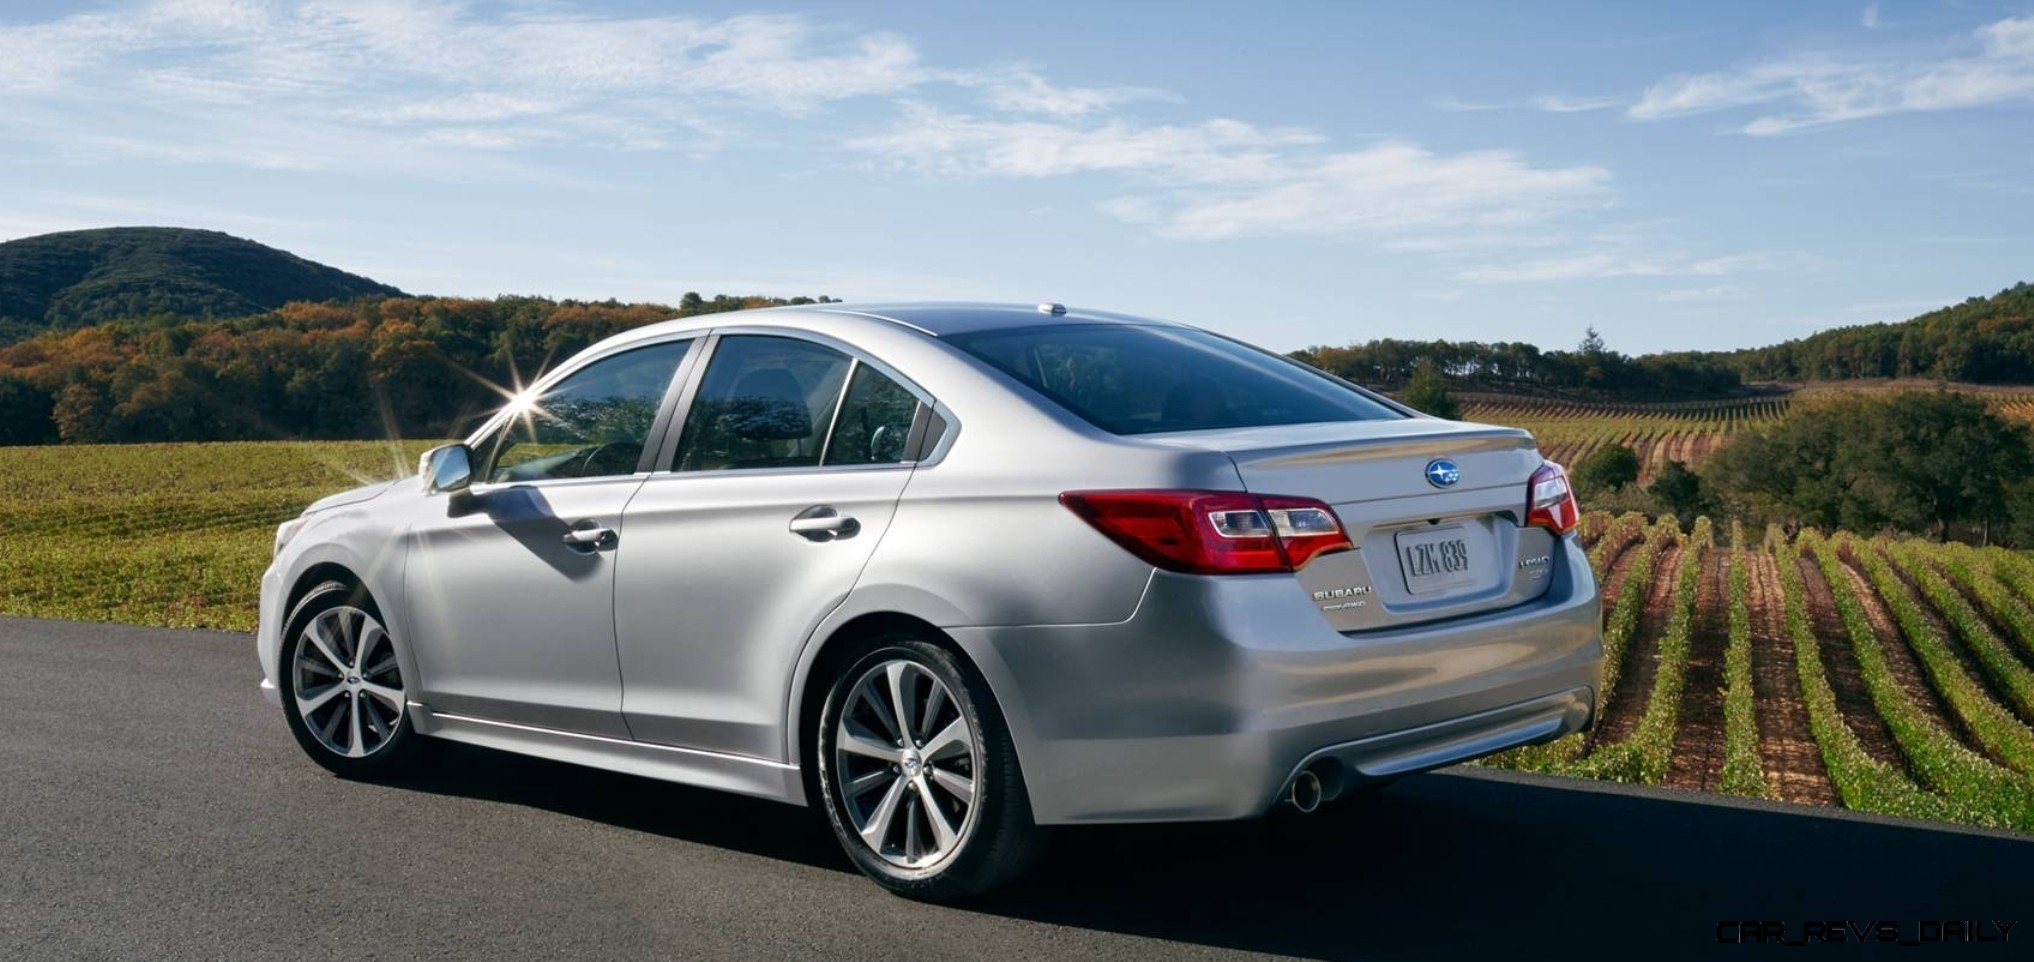 Subaru Legacy 3.6 R >> 2015 Subaru Legacy 2.5i and 3.6R Sedans -- Much Quieter ...